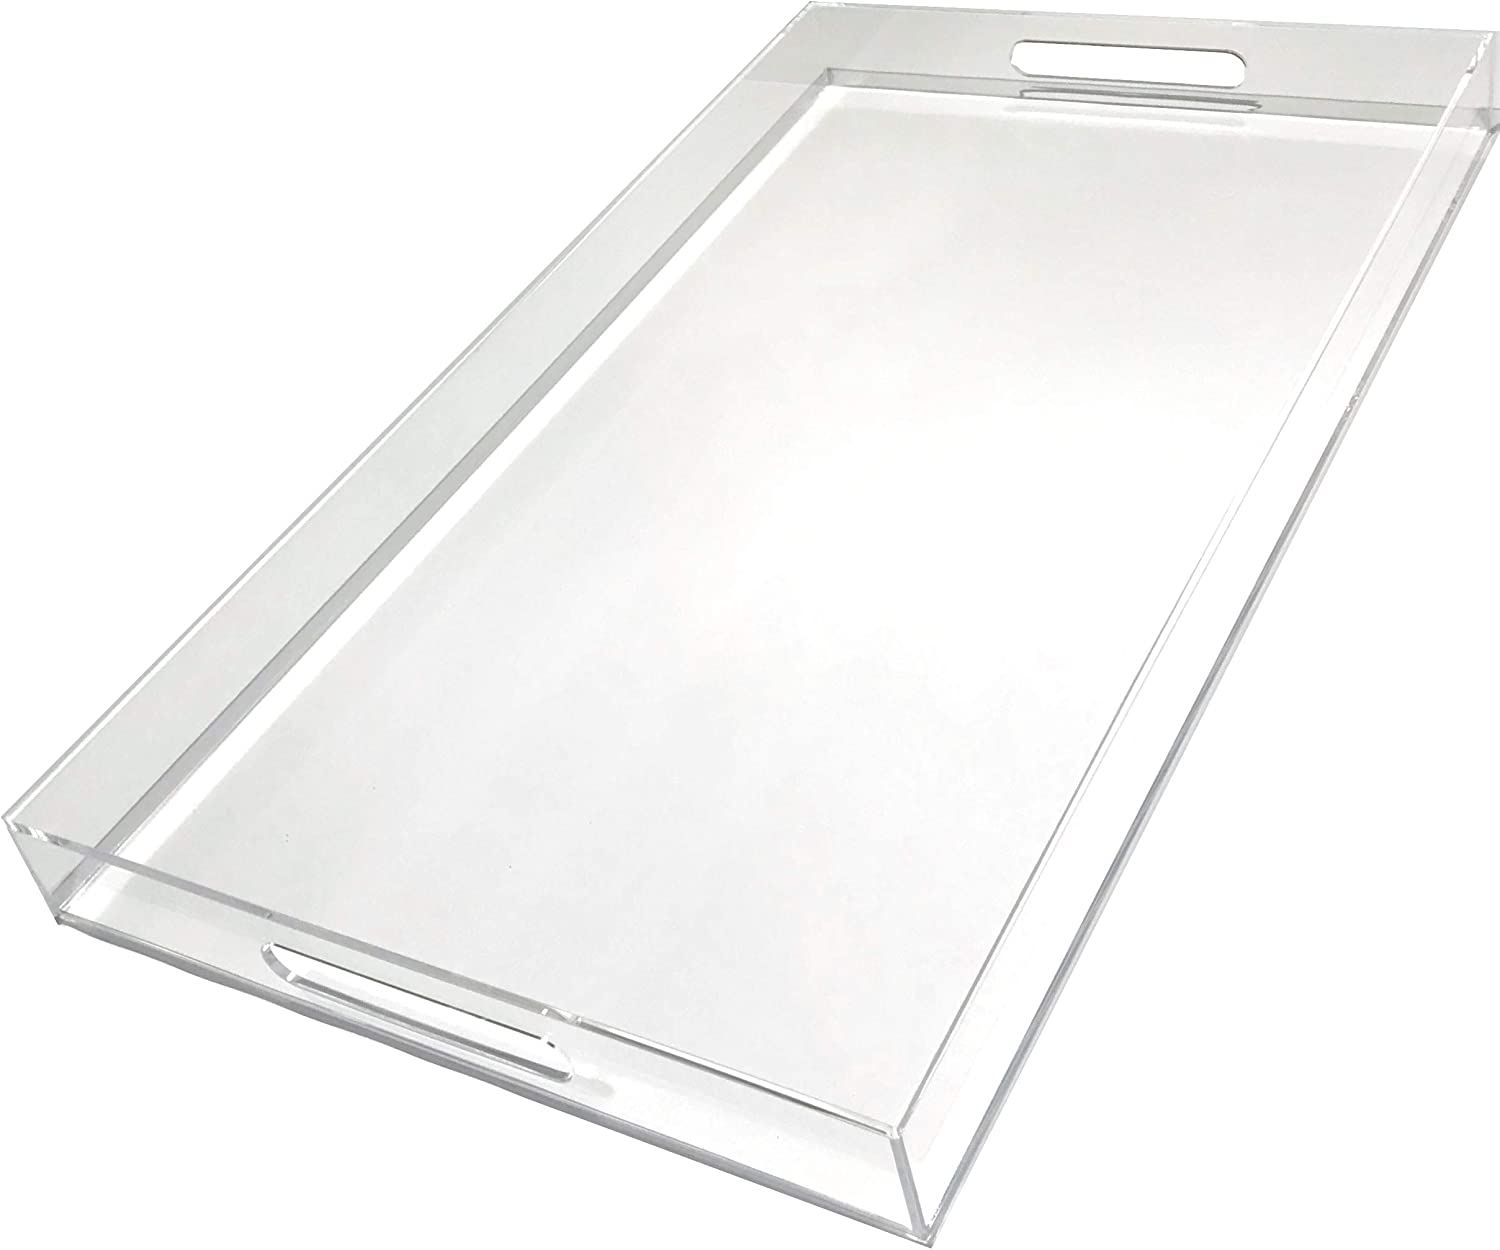 "Clear Serving Tray - Extra Large 14"" x 24.5"" - Modern Acrylic Spill-Proof Butler Tray for Serving, Eating Breakfast, Dessert, Appetizer, Picnic, Home Bar, Partys, Living Room Organizing"